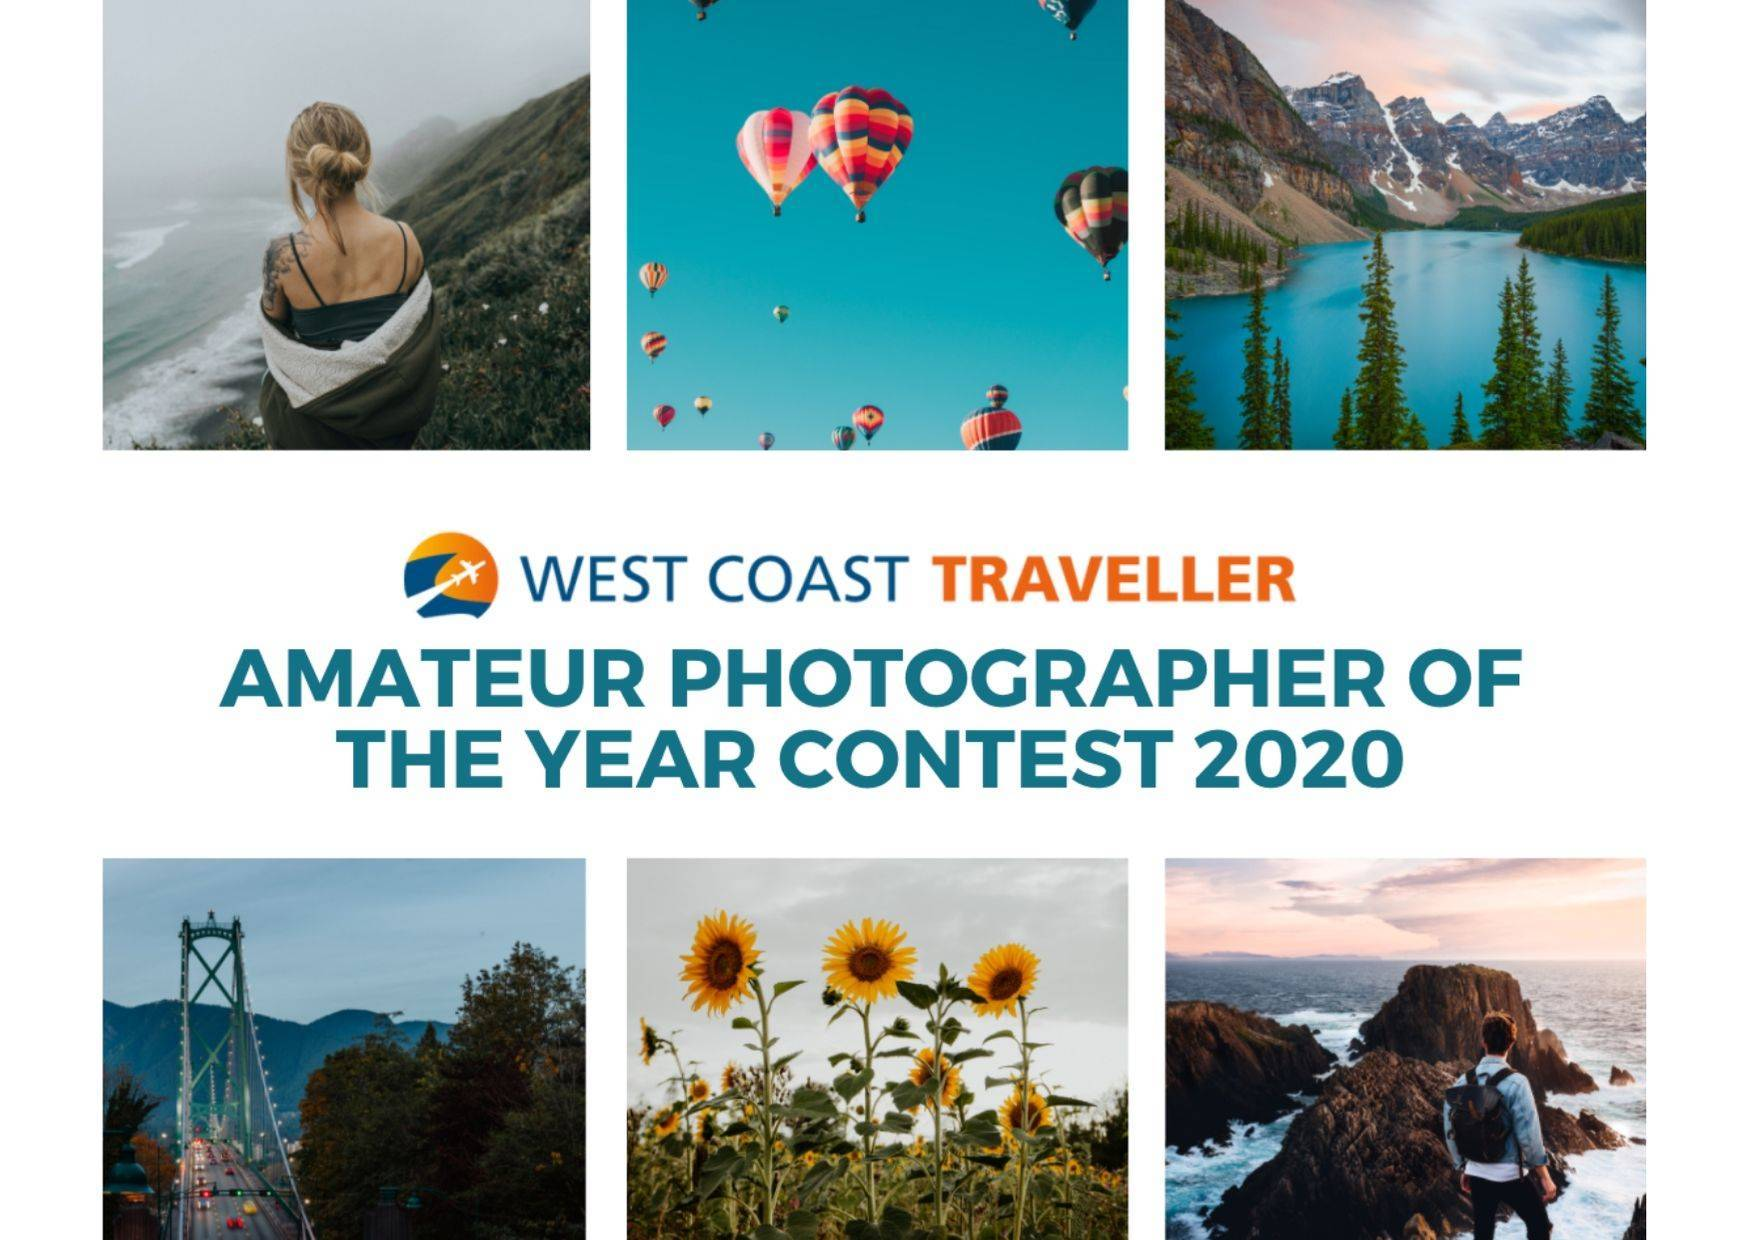 The winners have been annouced for the 2020 Amateur Photographer of the Year Contest